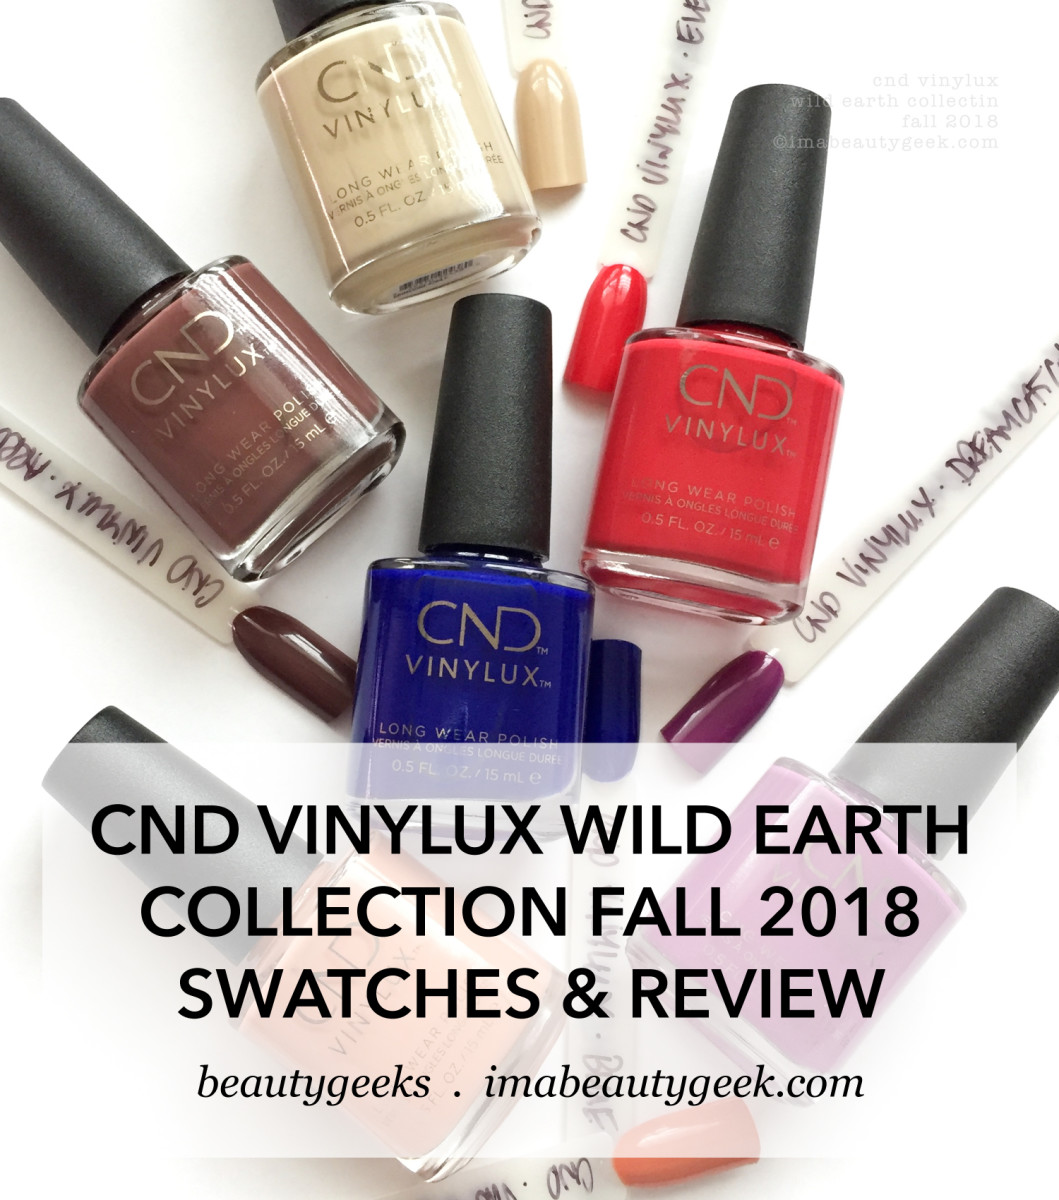 CND Vinylux Wild Earth Collection Fall 2018 Swatches Review